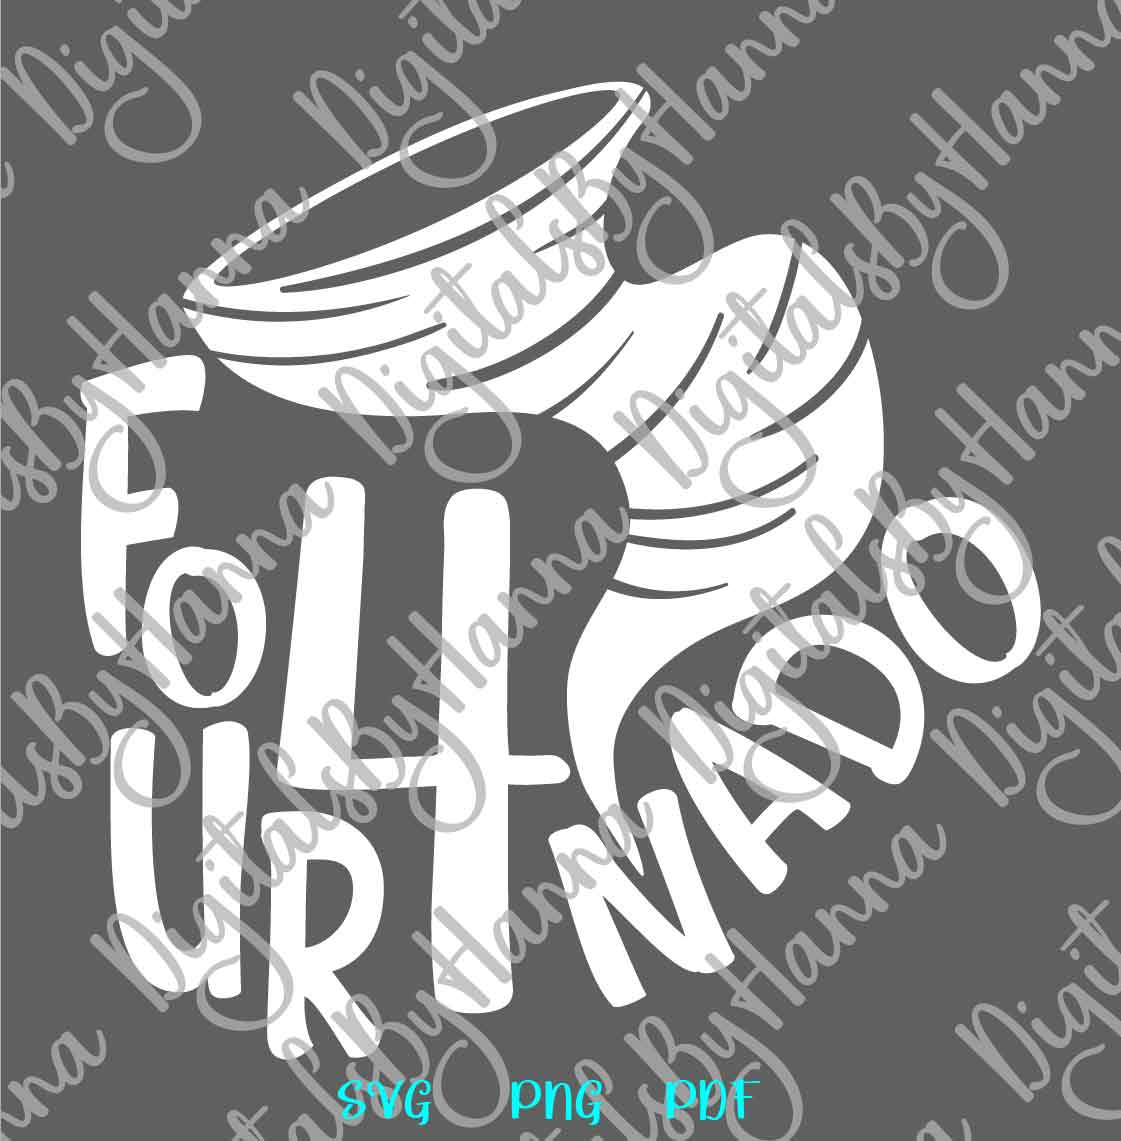 Fournado 4th Birthday Outfit Sign Print & Cut File PNG SVG example image 6